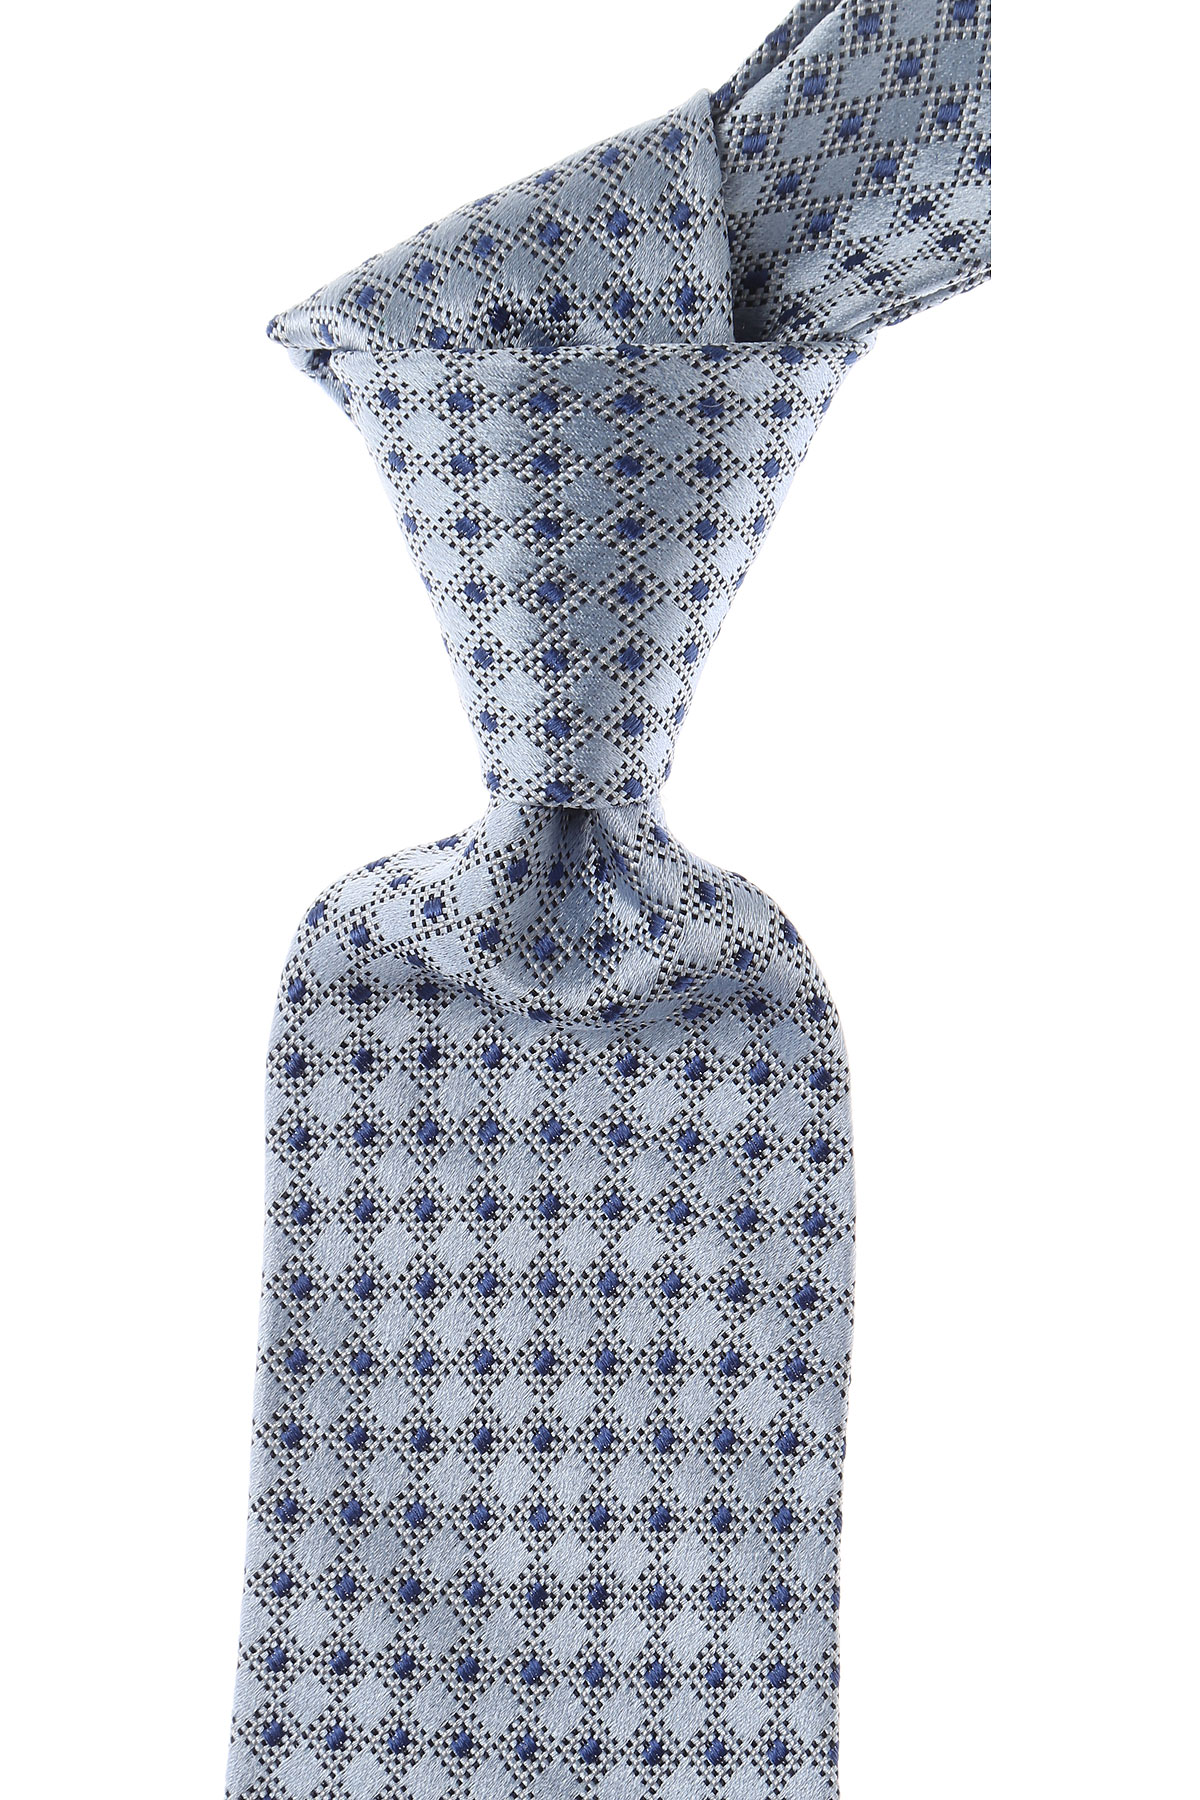 Giorgio_Armani_Ties_On_Sale_Light_Sky_Blue_Silk_2019